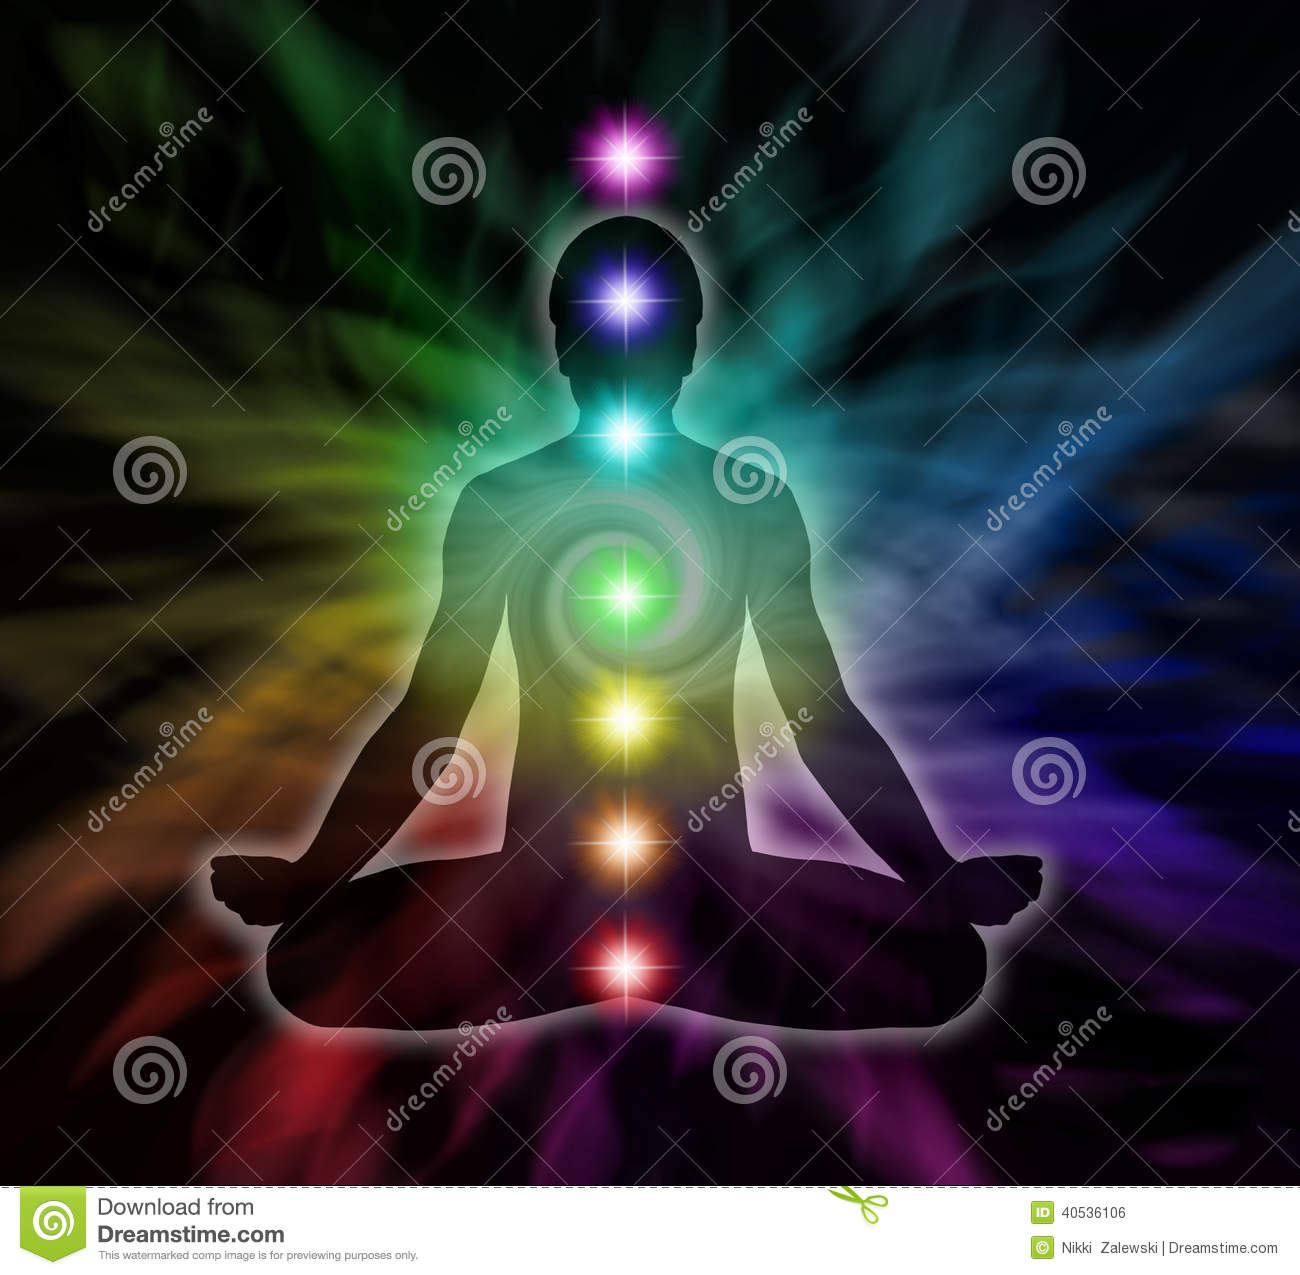 rainbow chakra meditation silhouette diagram man lotus position seven chakras flowing energy background 40536106 rainbow chakra meditation stock illustration illustration of healer